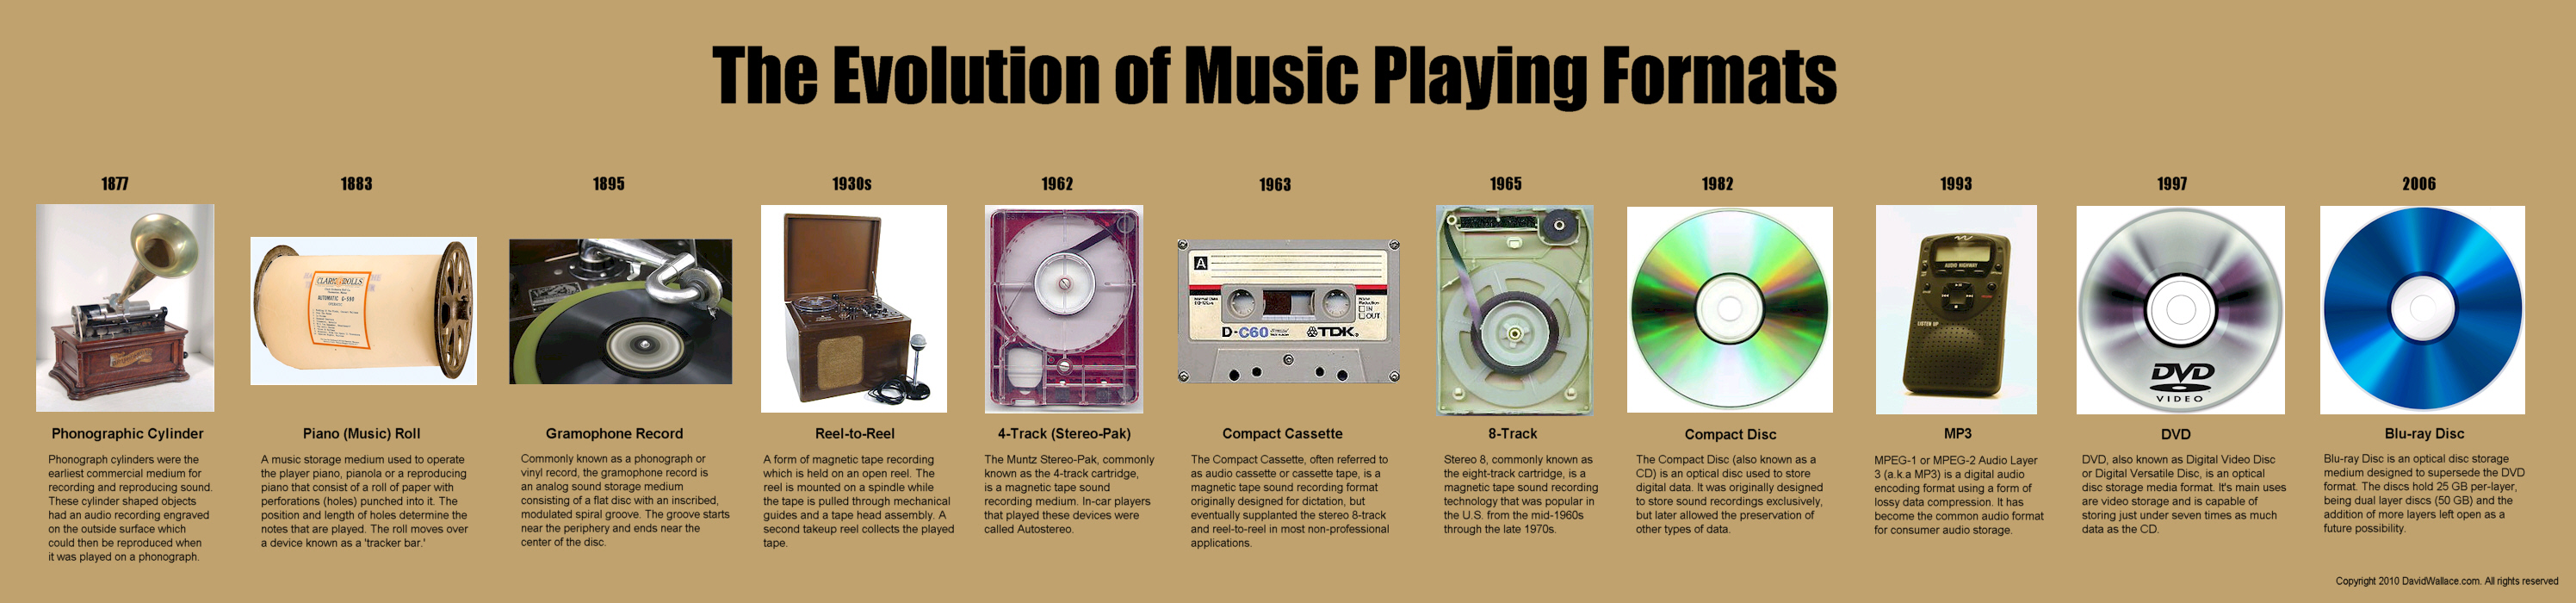 history of the music industry disruption media essay This blog looks at the history of the music industry, where the business of music started, how the three main parts of the industry evolved, and how we have got to the industry we know.